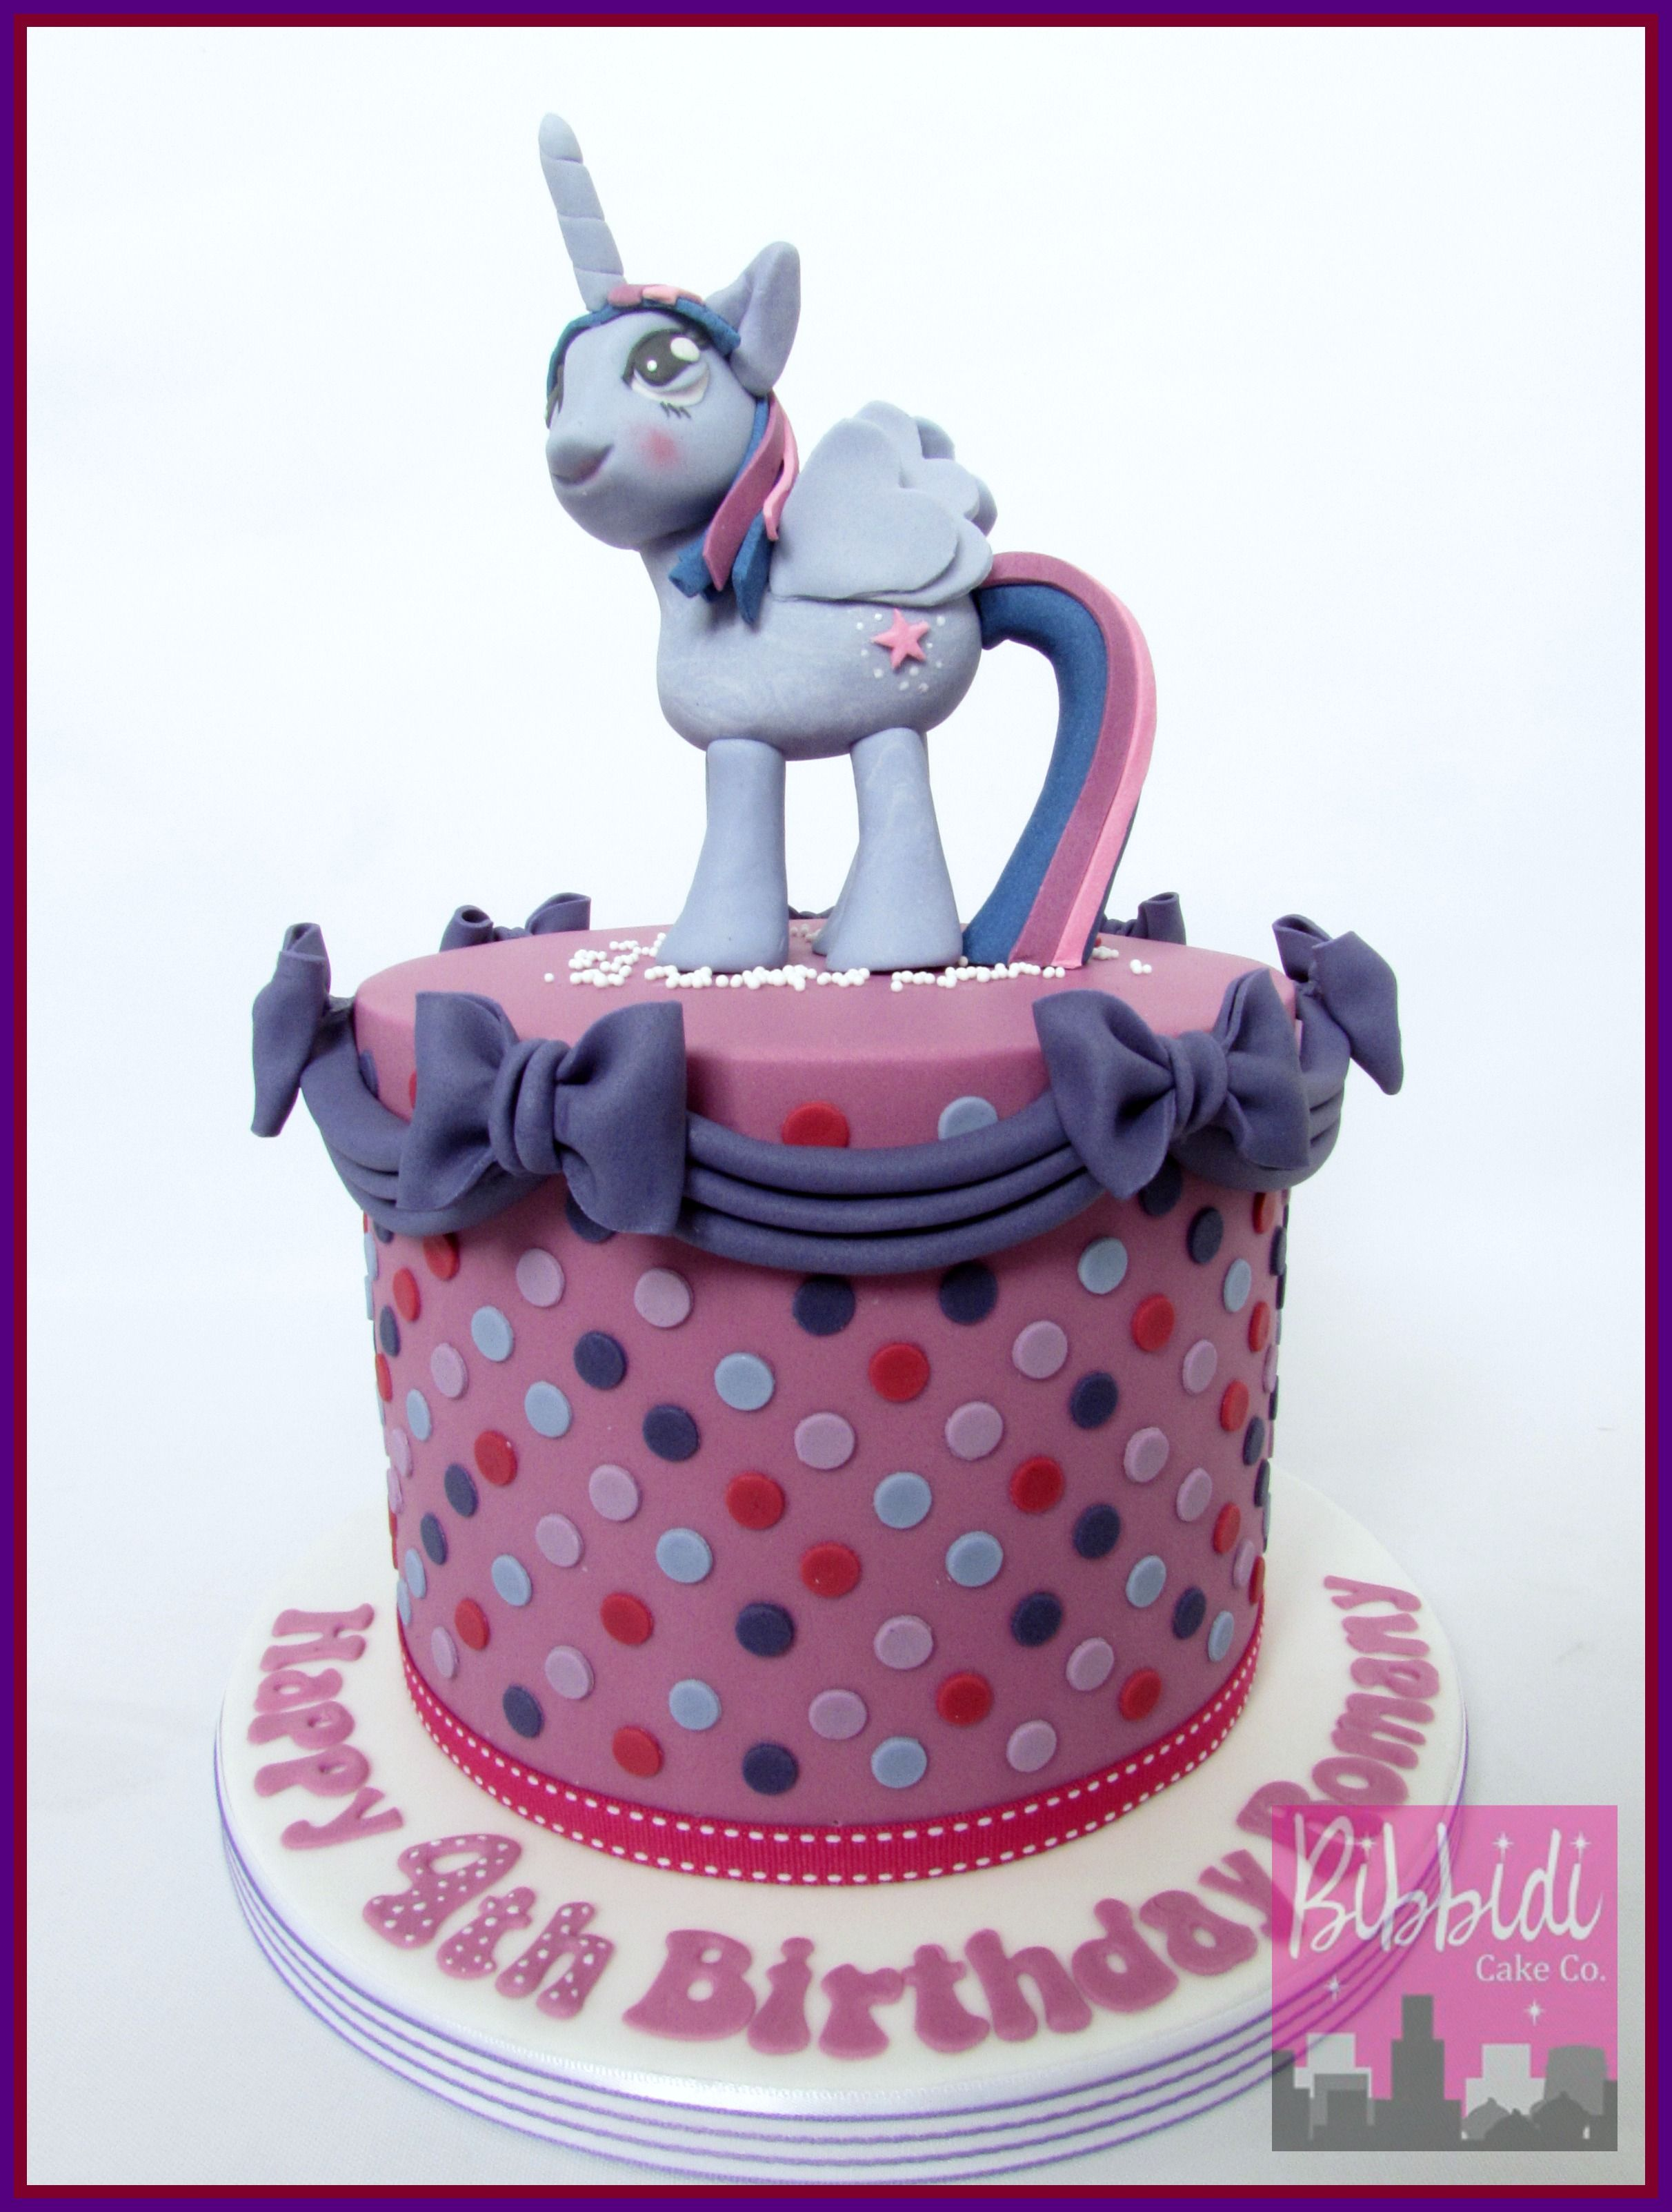 My Little Pony Twilight Sparkle Cake By Bibbidi Cake Co